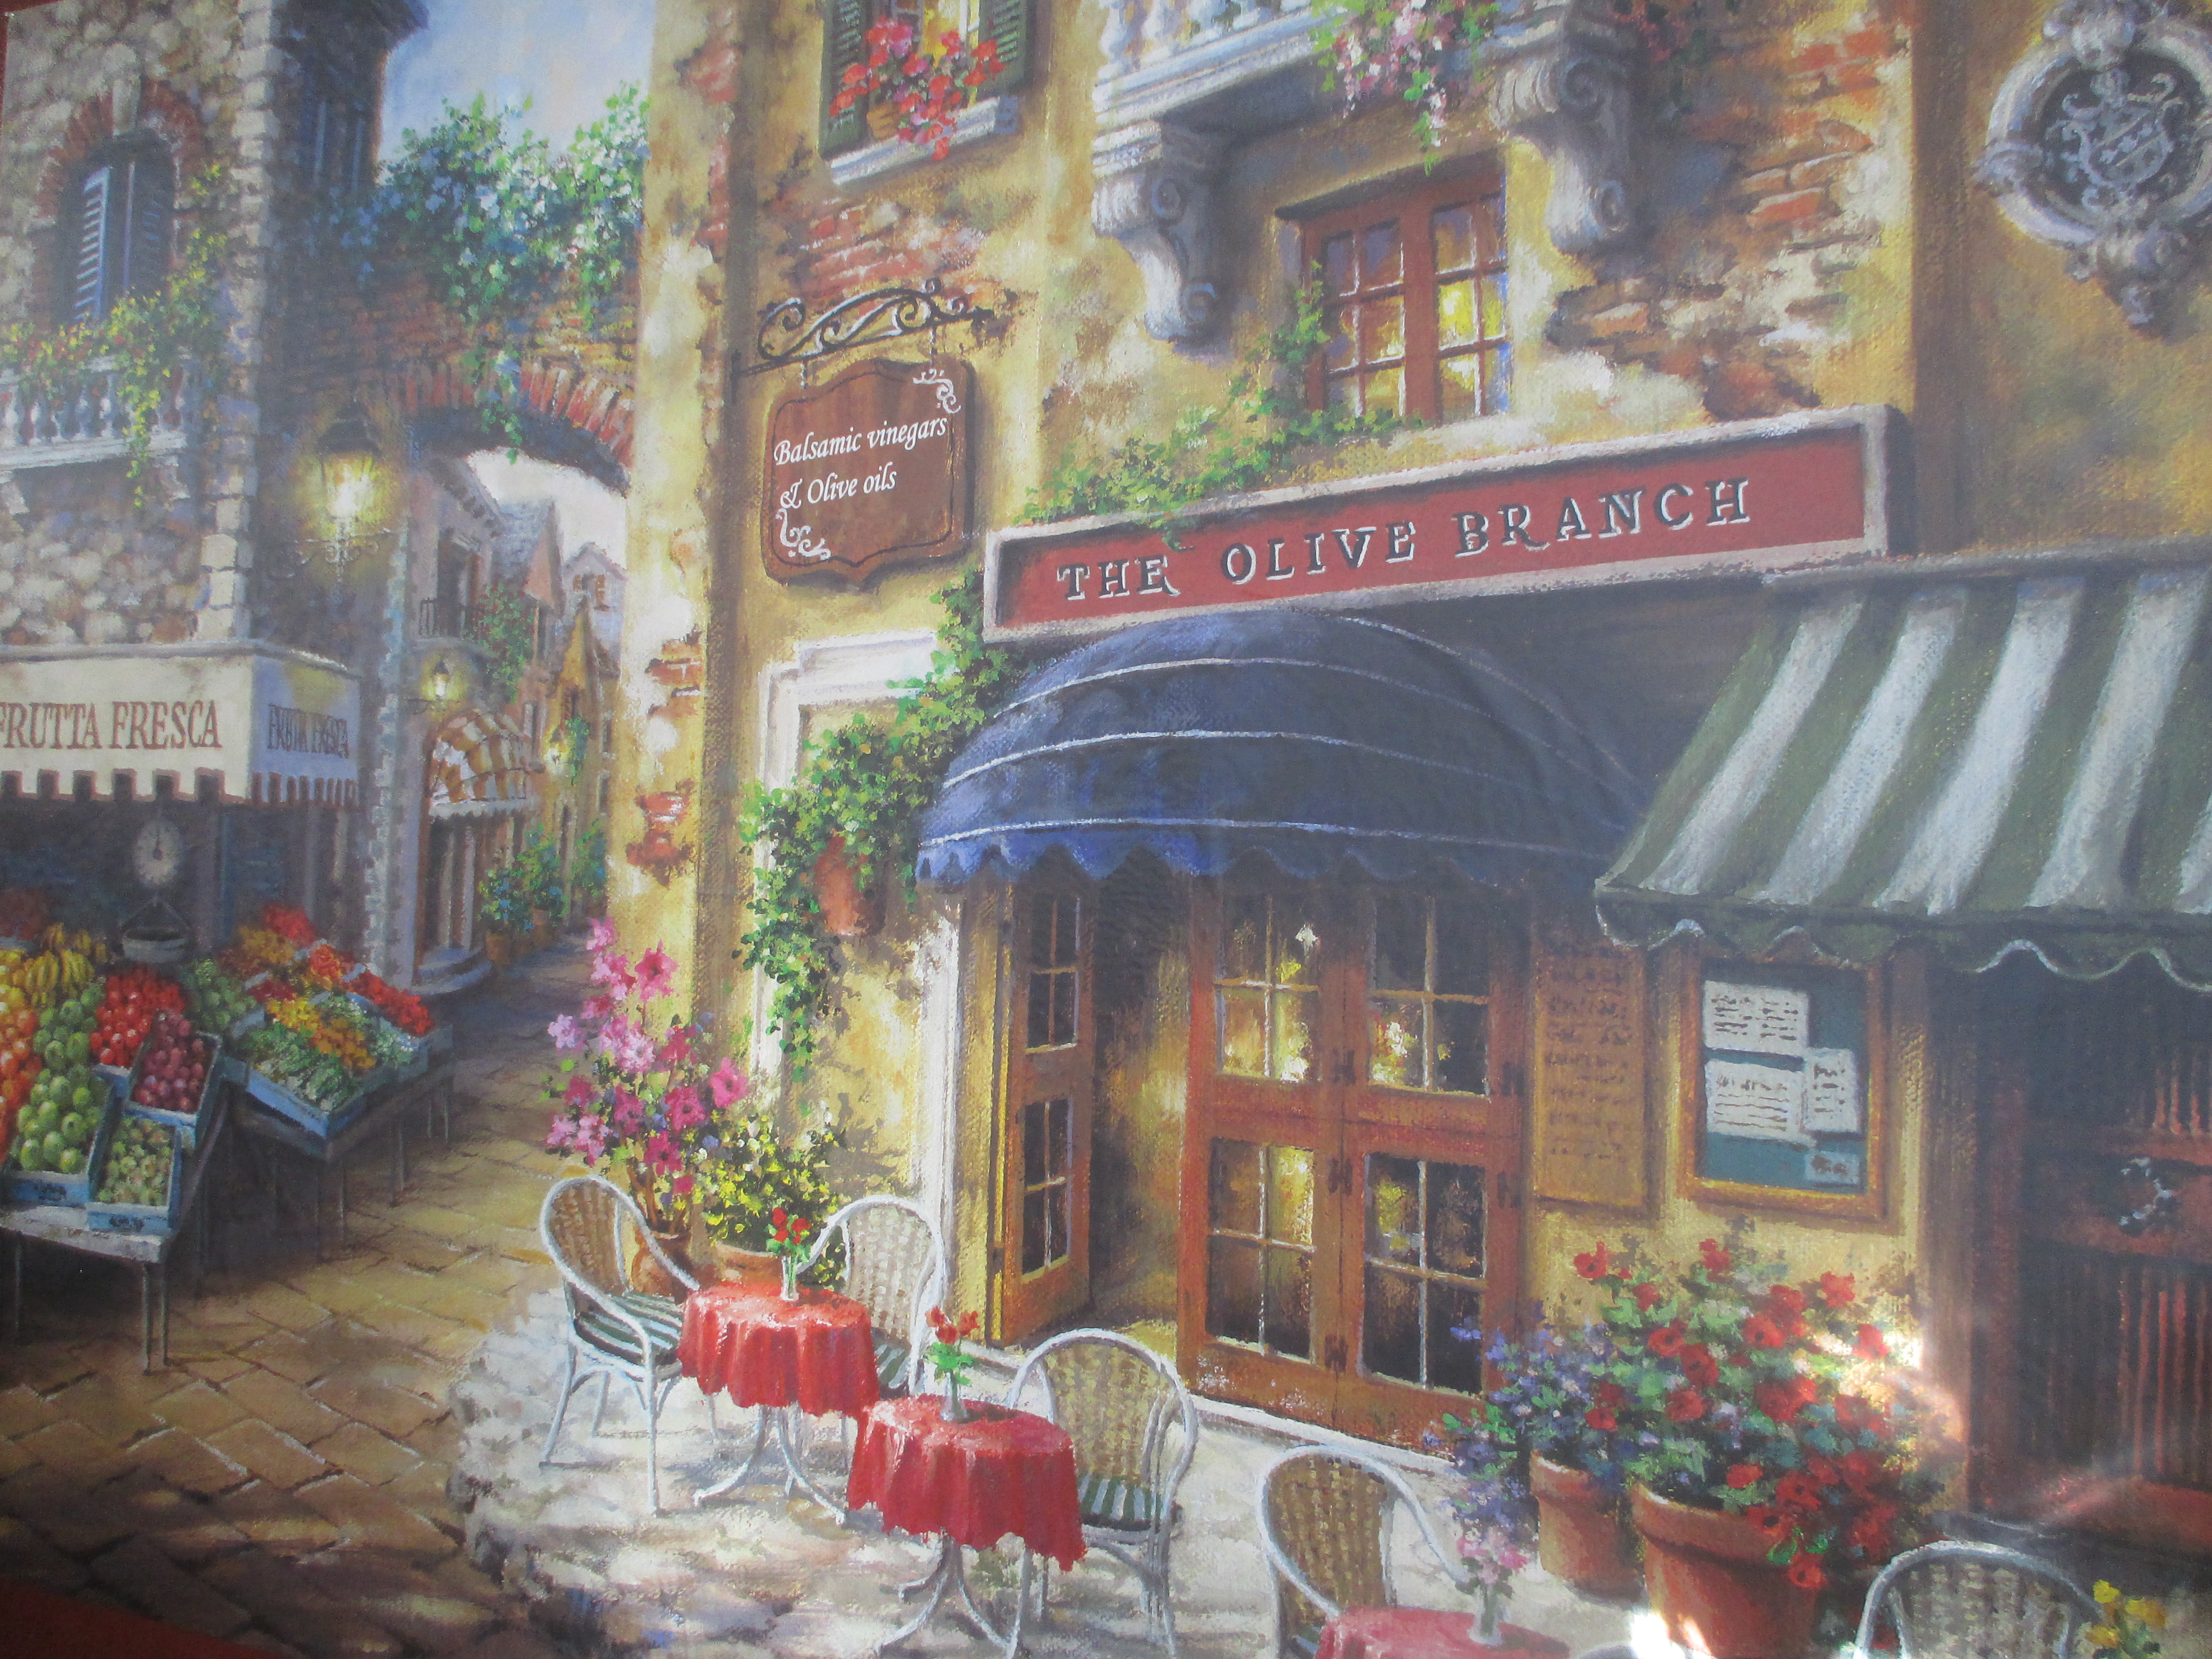 mural-pictures-001.jpg